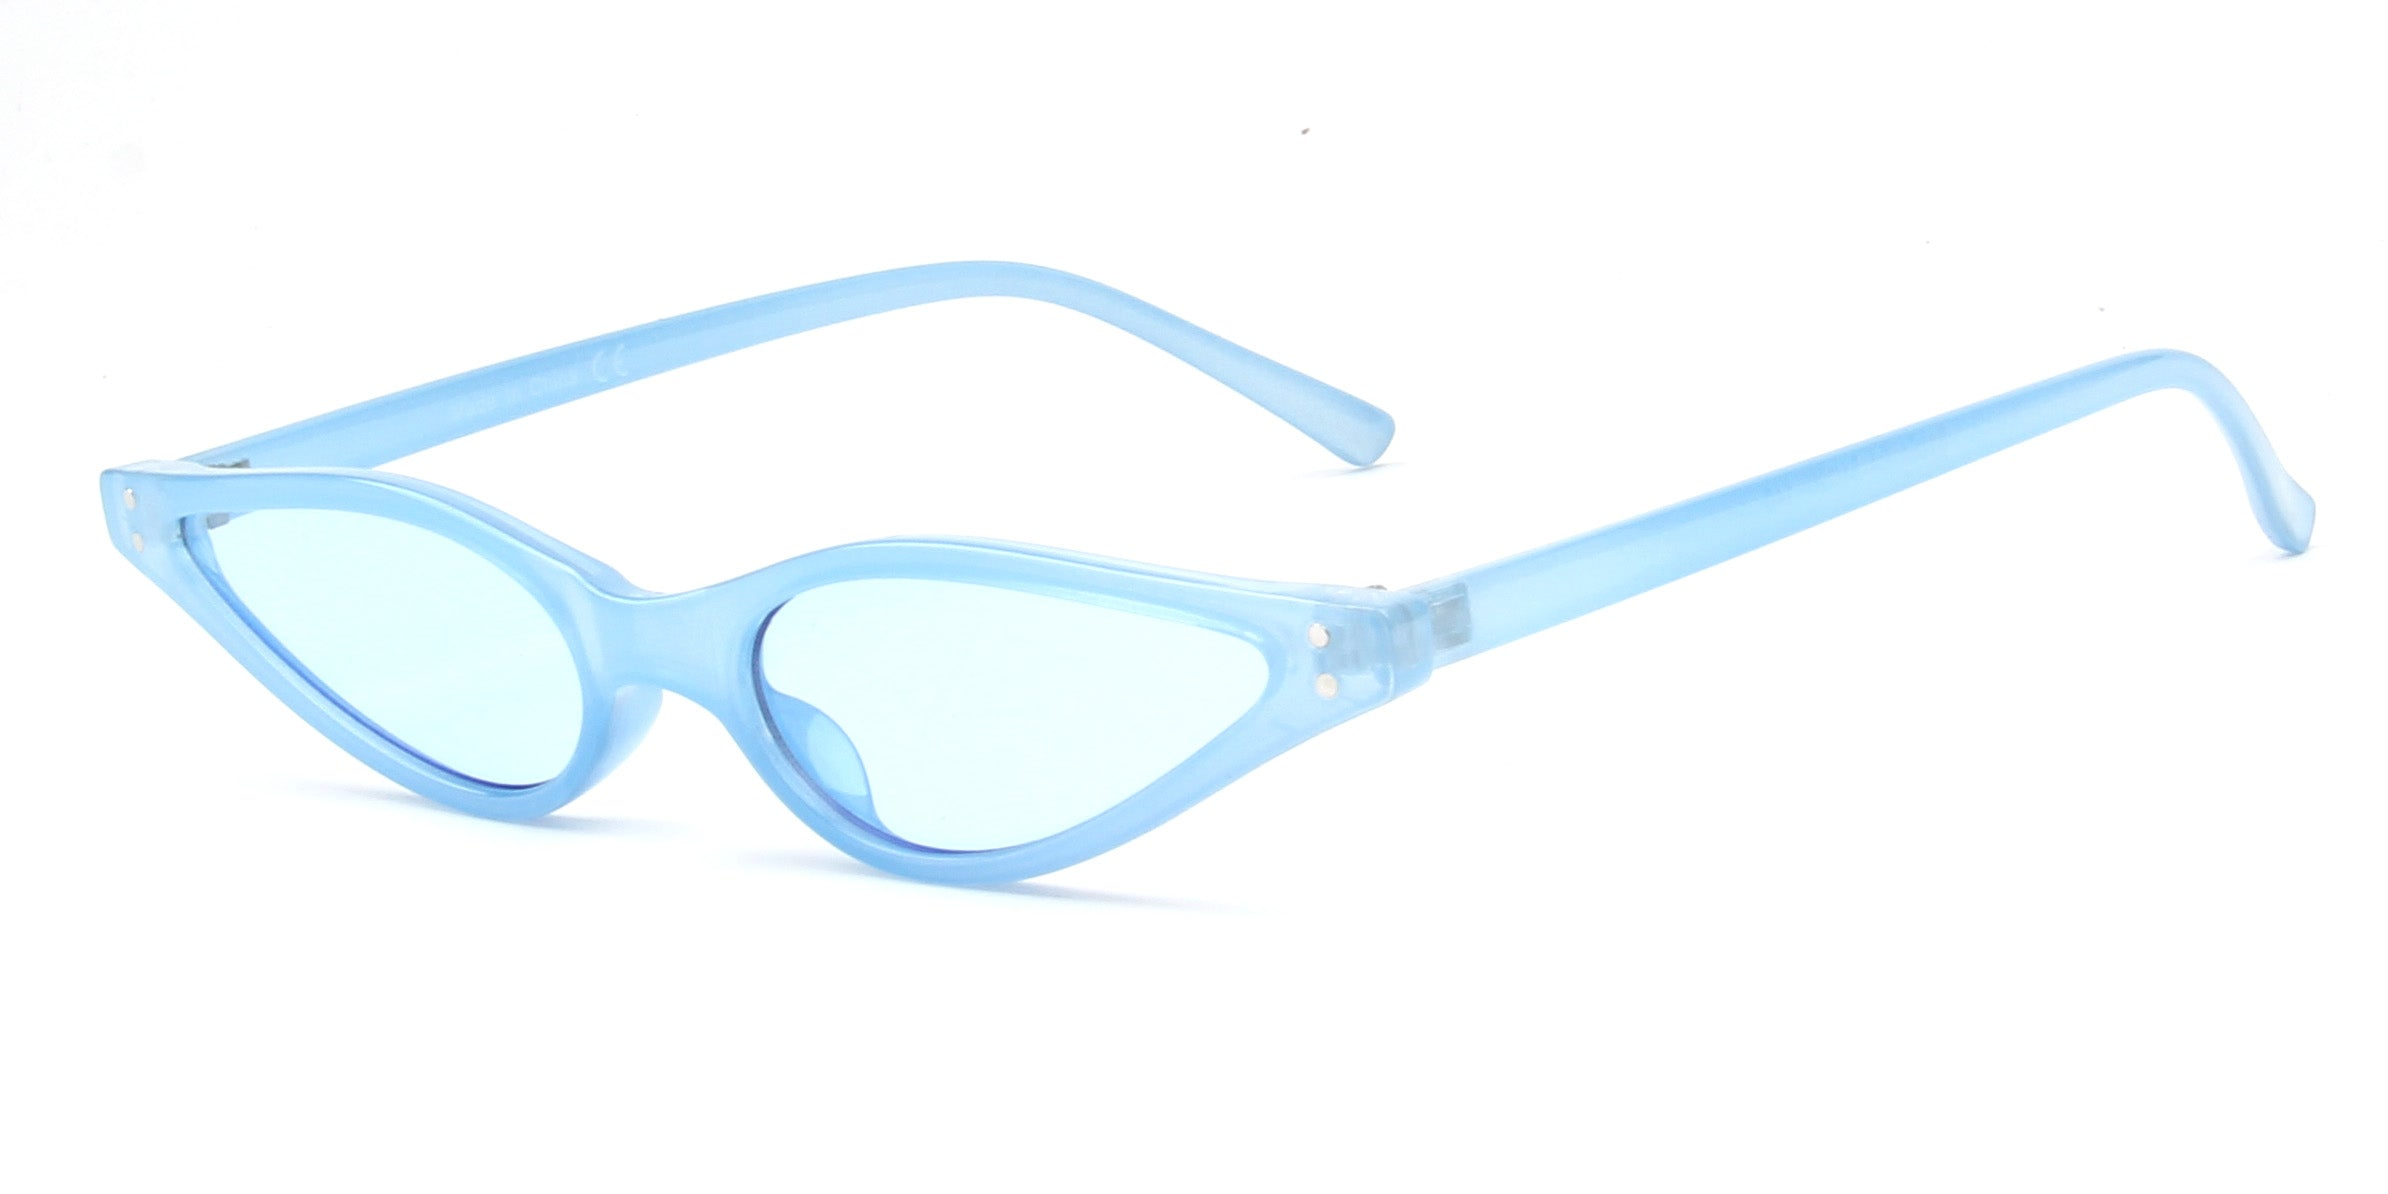 Akcessoryz-women small round oval sunglasses with blue lens and blue frame